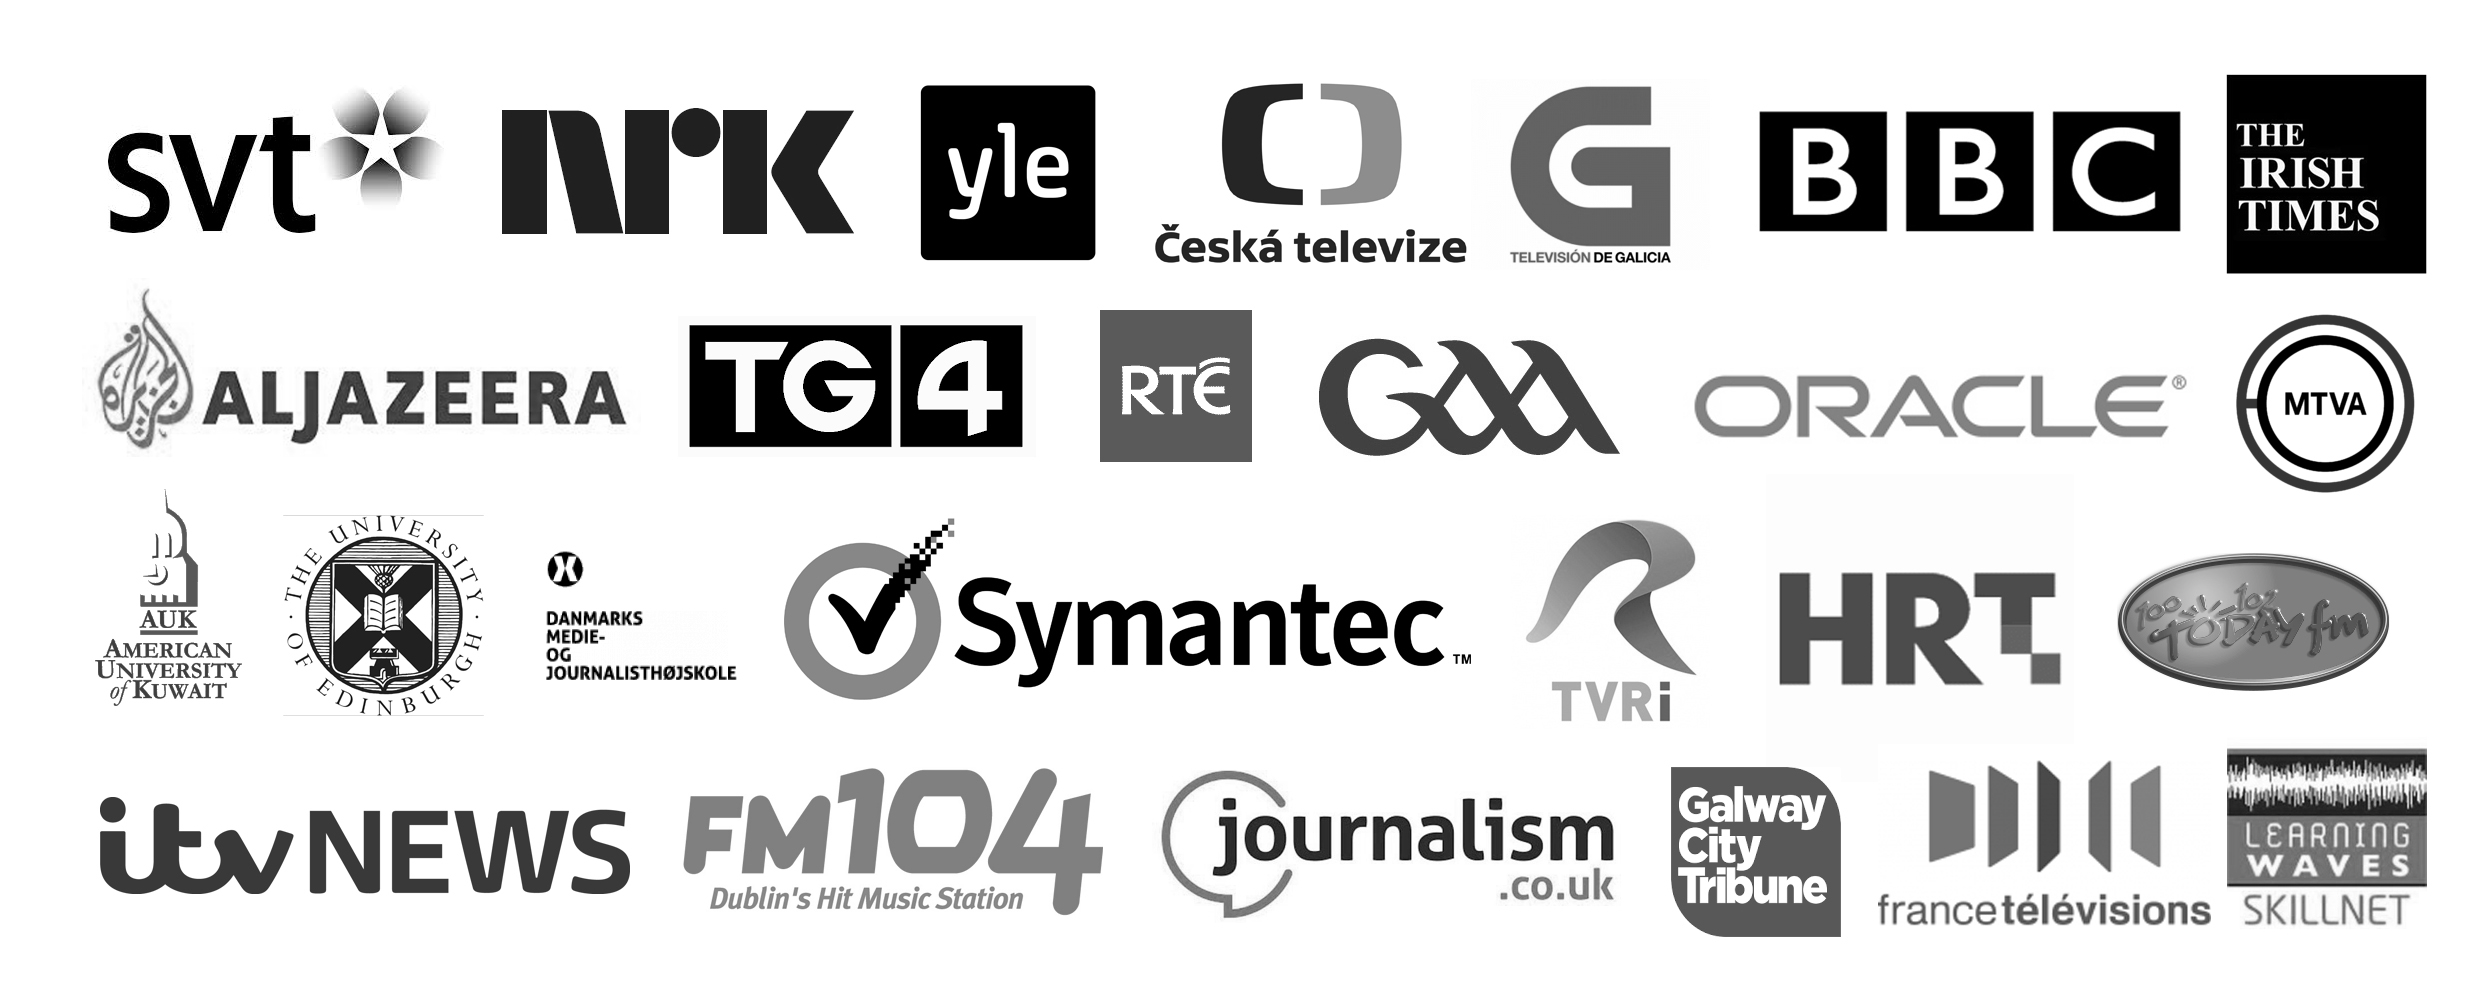 These are just some of the TV broadcasters, radio stations, newspapers, companies and universities who have used our services.